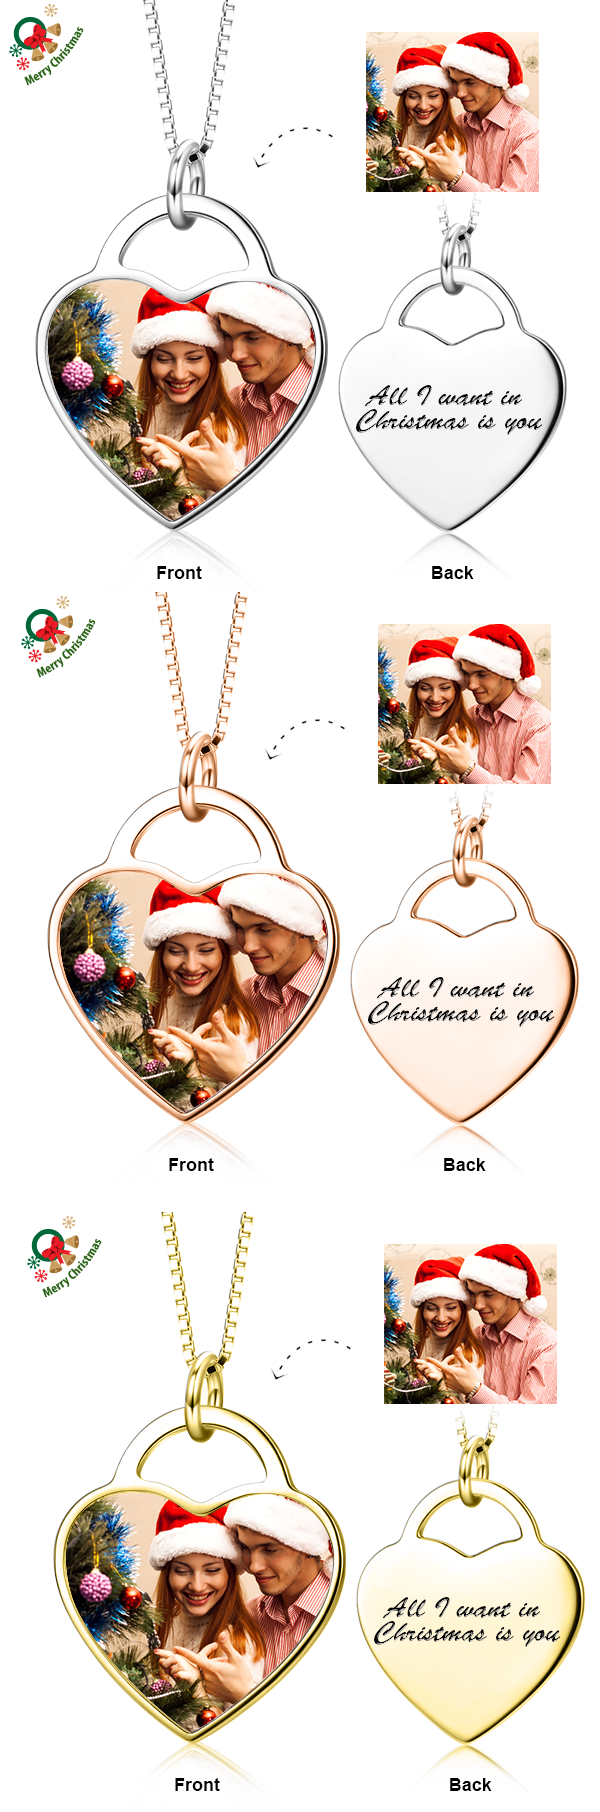 Christmas Gift-Customize Your Color Photo&Text in Love Heart Pendant Necklace in Sterling Silver/14K Gold 2017 hottest write name on jewellery. Come to Yafeini to pick your beloved Personalized necklace https://www.jewelrypersonalizer.com